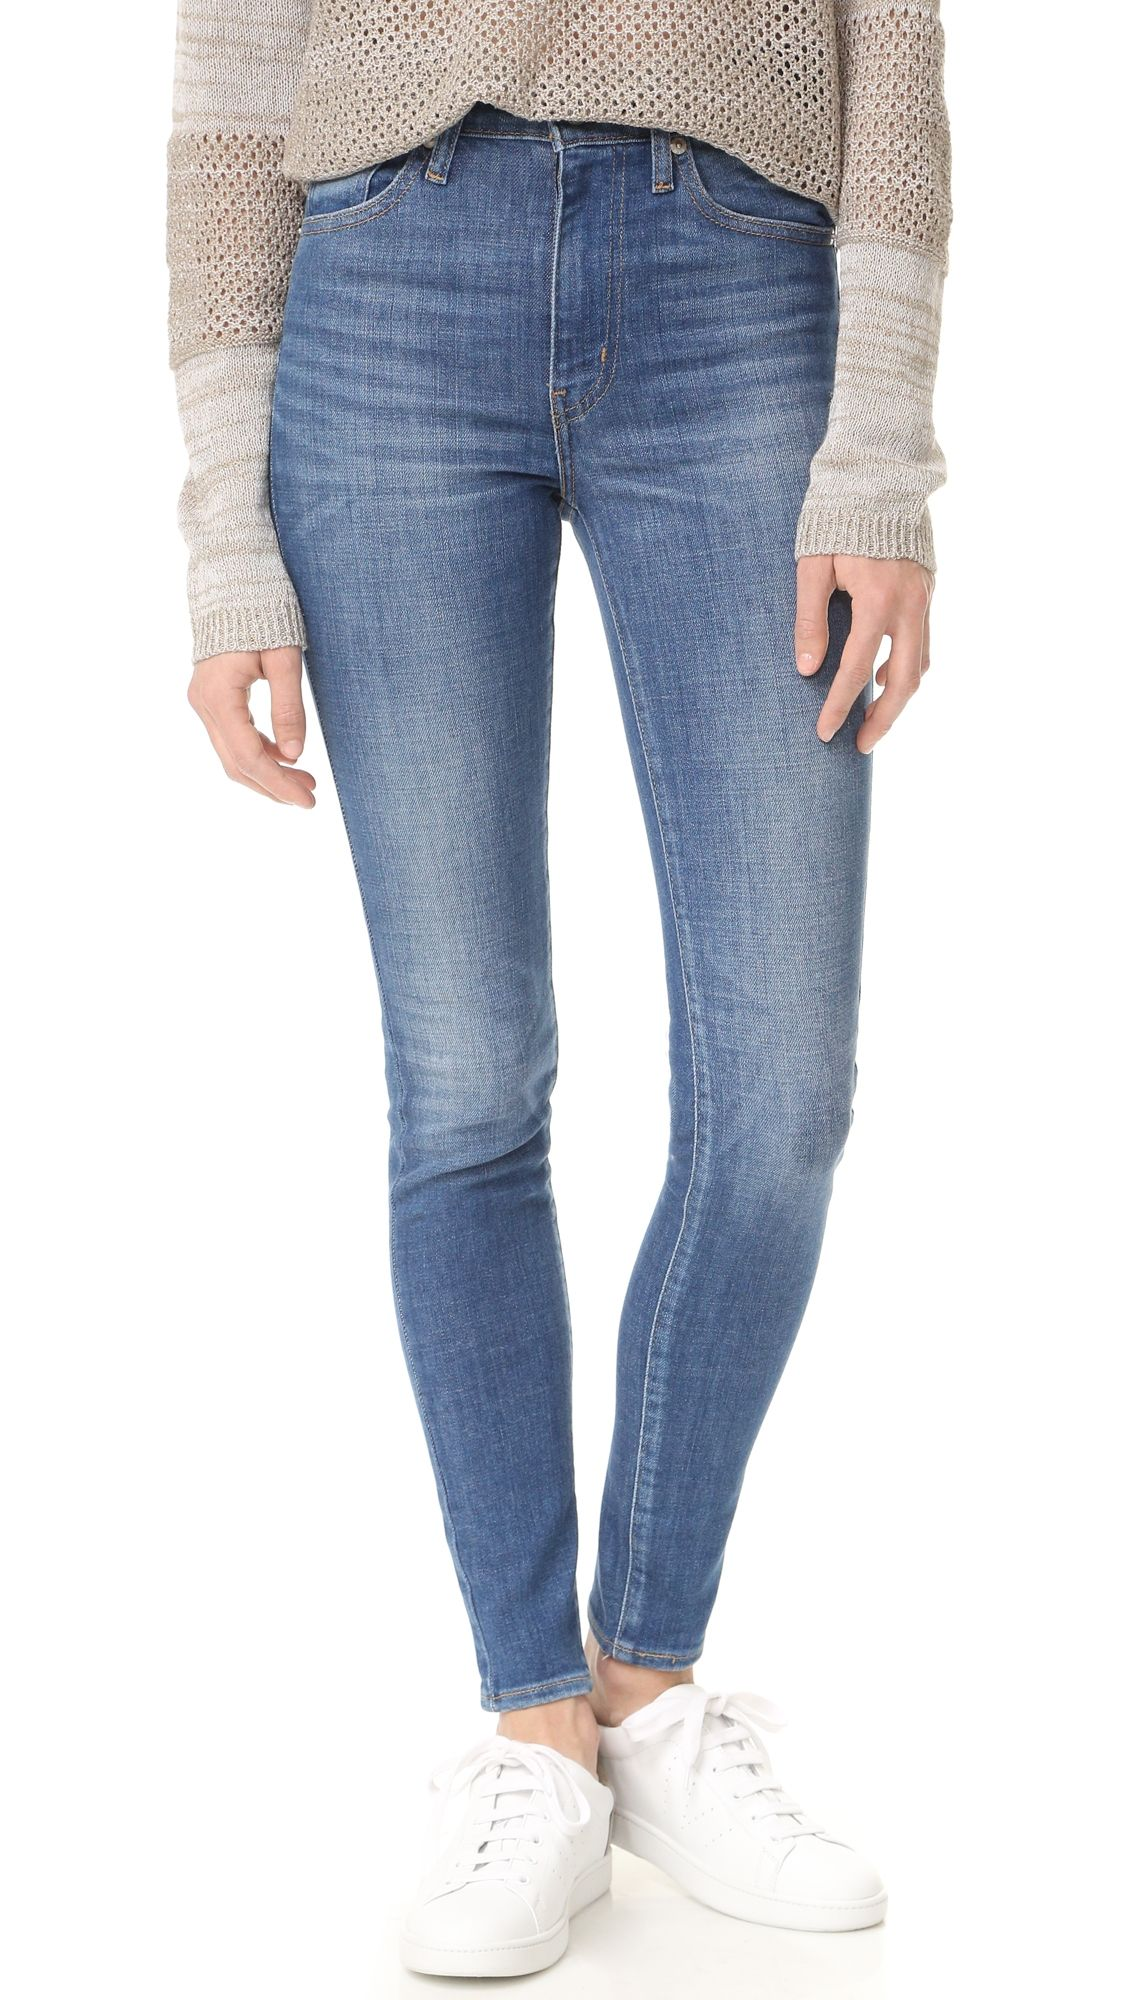 d8a564bbfa4 Levi s Mile High Super Skinny Jeans